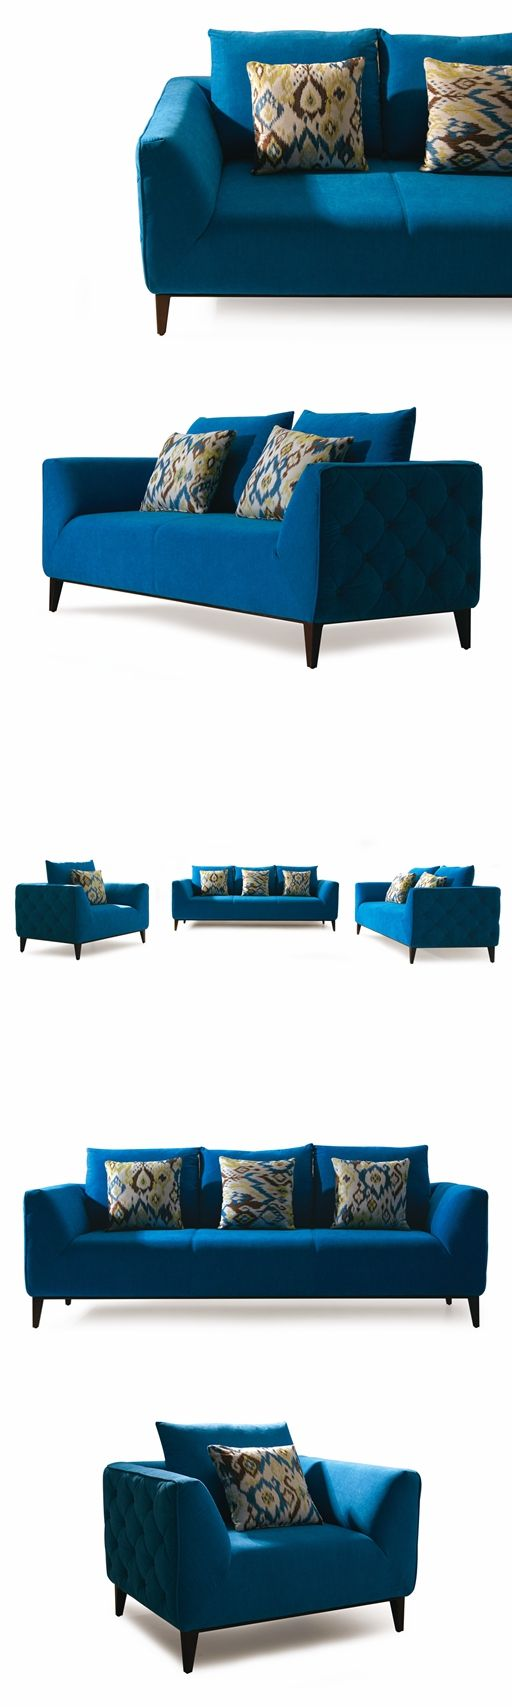 new design modern sofa set #sofaset #sofa #cocheen #modernsofa #cocheendesign #livingroomsofa #furniture #newdesign #sectionalsofa #homefurniture #couch #furniturefactory  contact:jennifer@cocheen.com  online store link: cocheenfurniture.en.alibaba.com